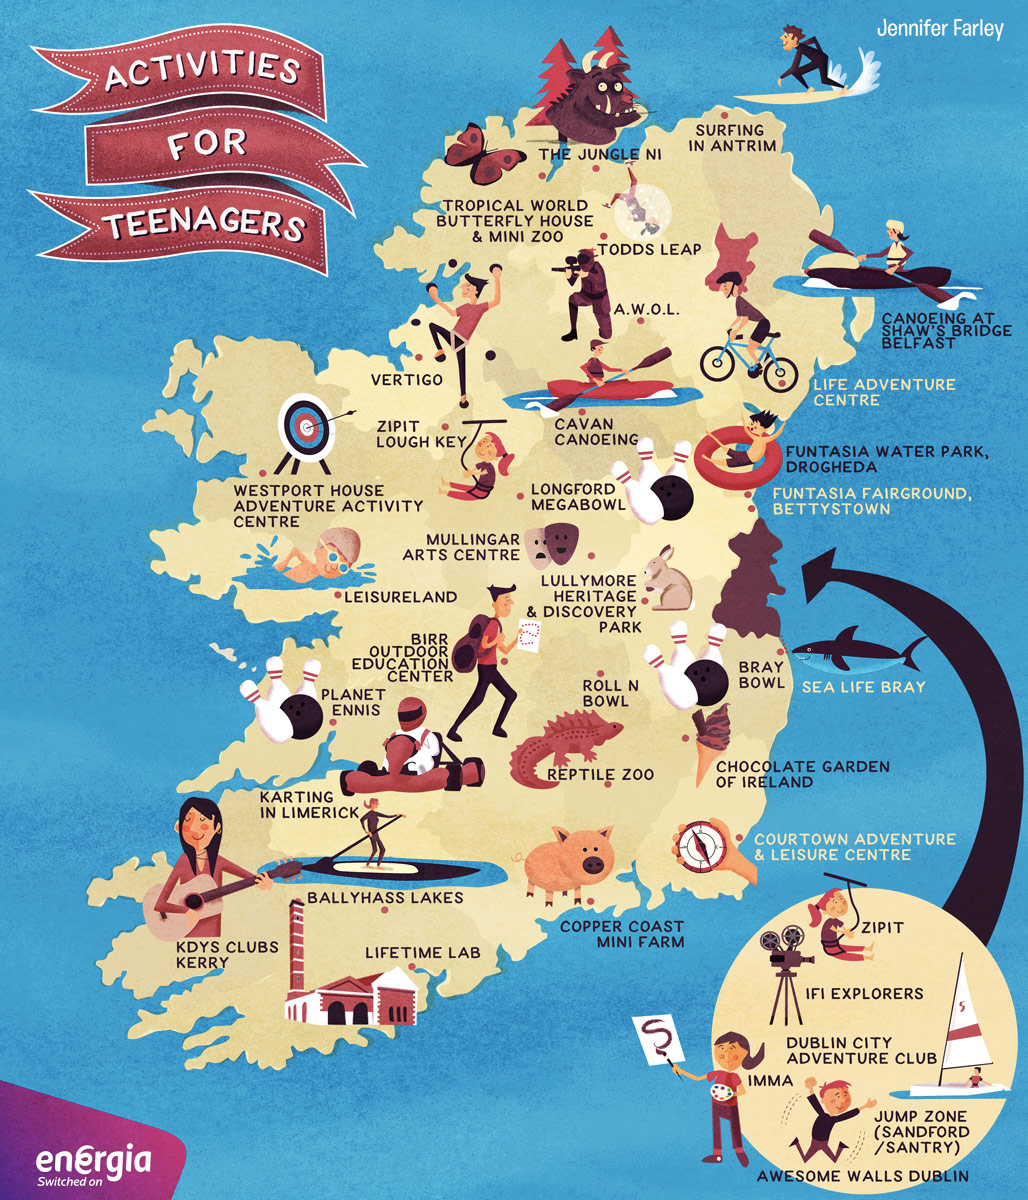 Activities For Teenagers Map of Ireland Jennifer Farley